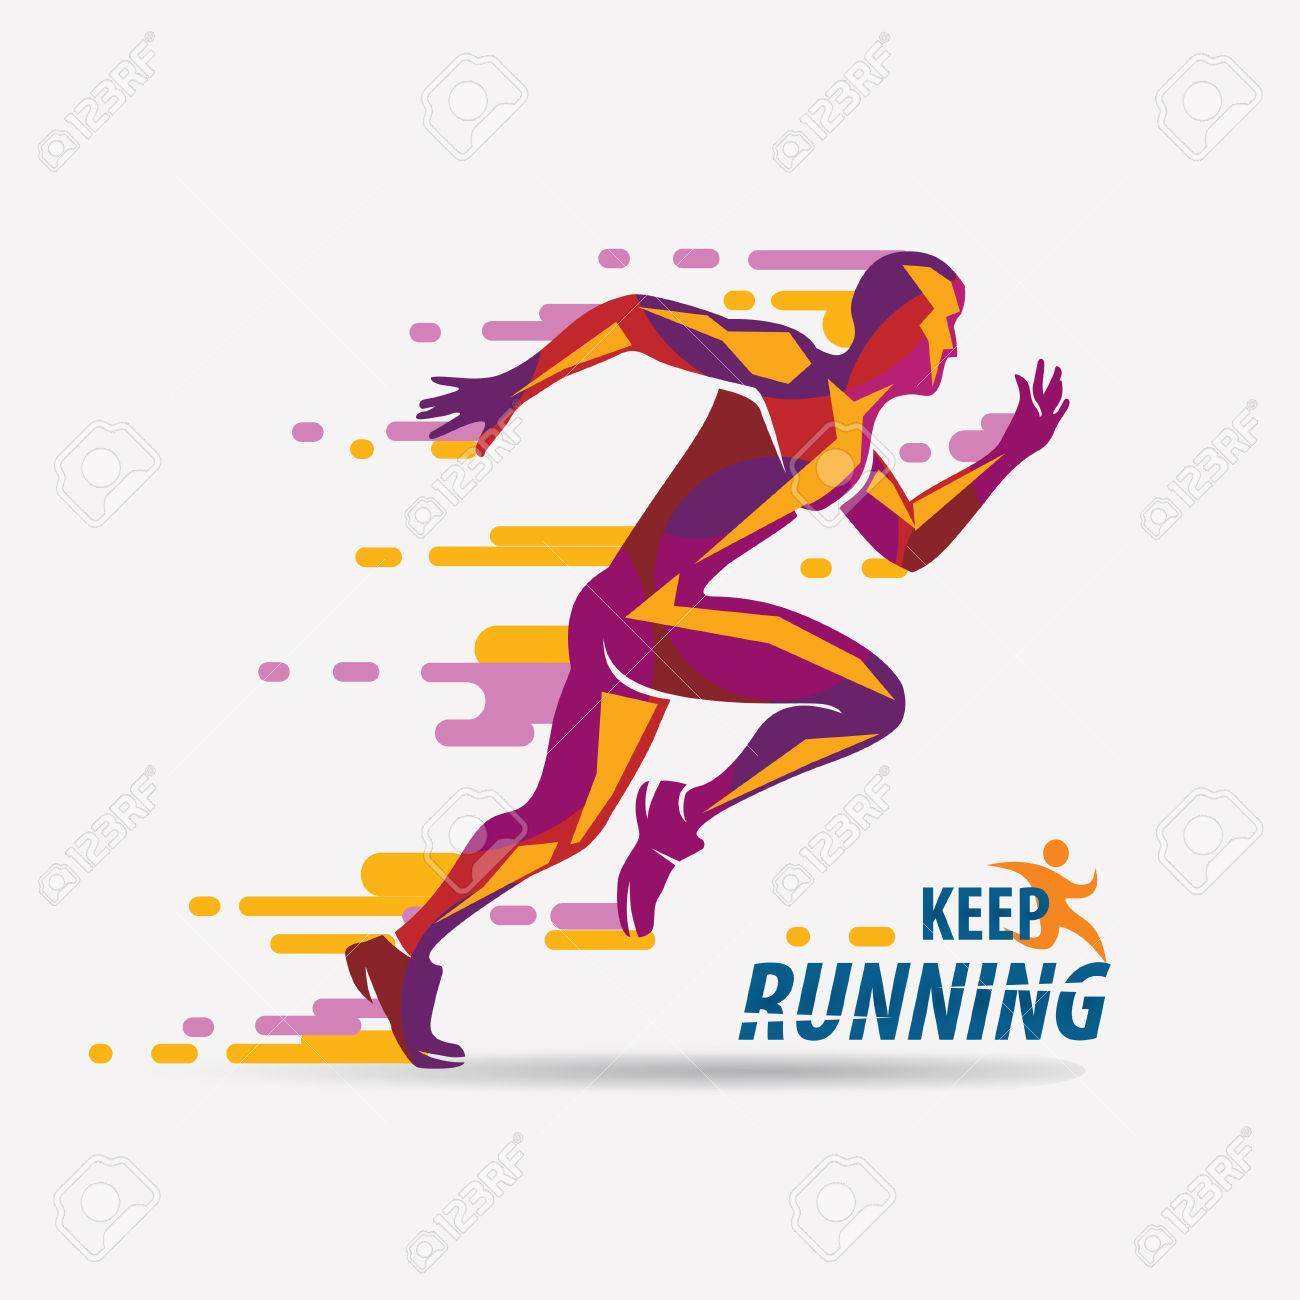 running man vector symbol, sport and competition concept background - 87115252